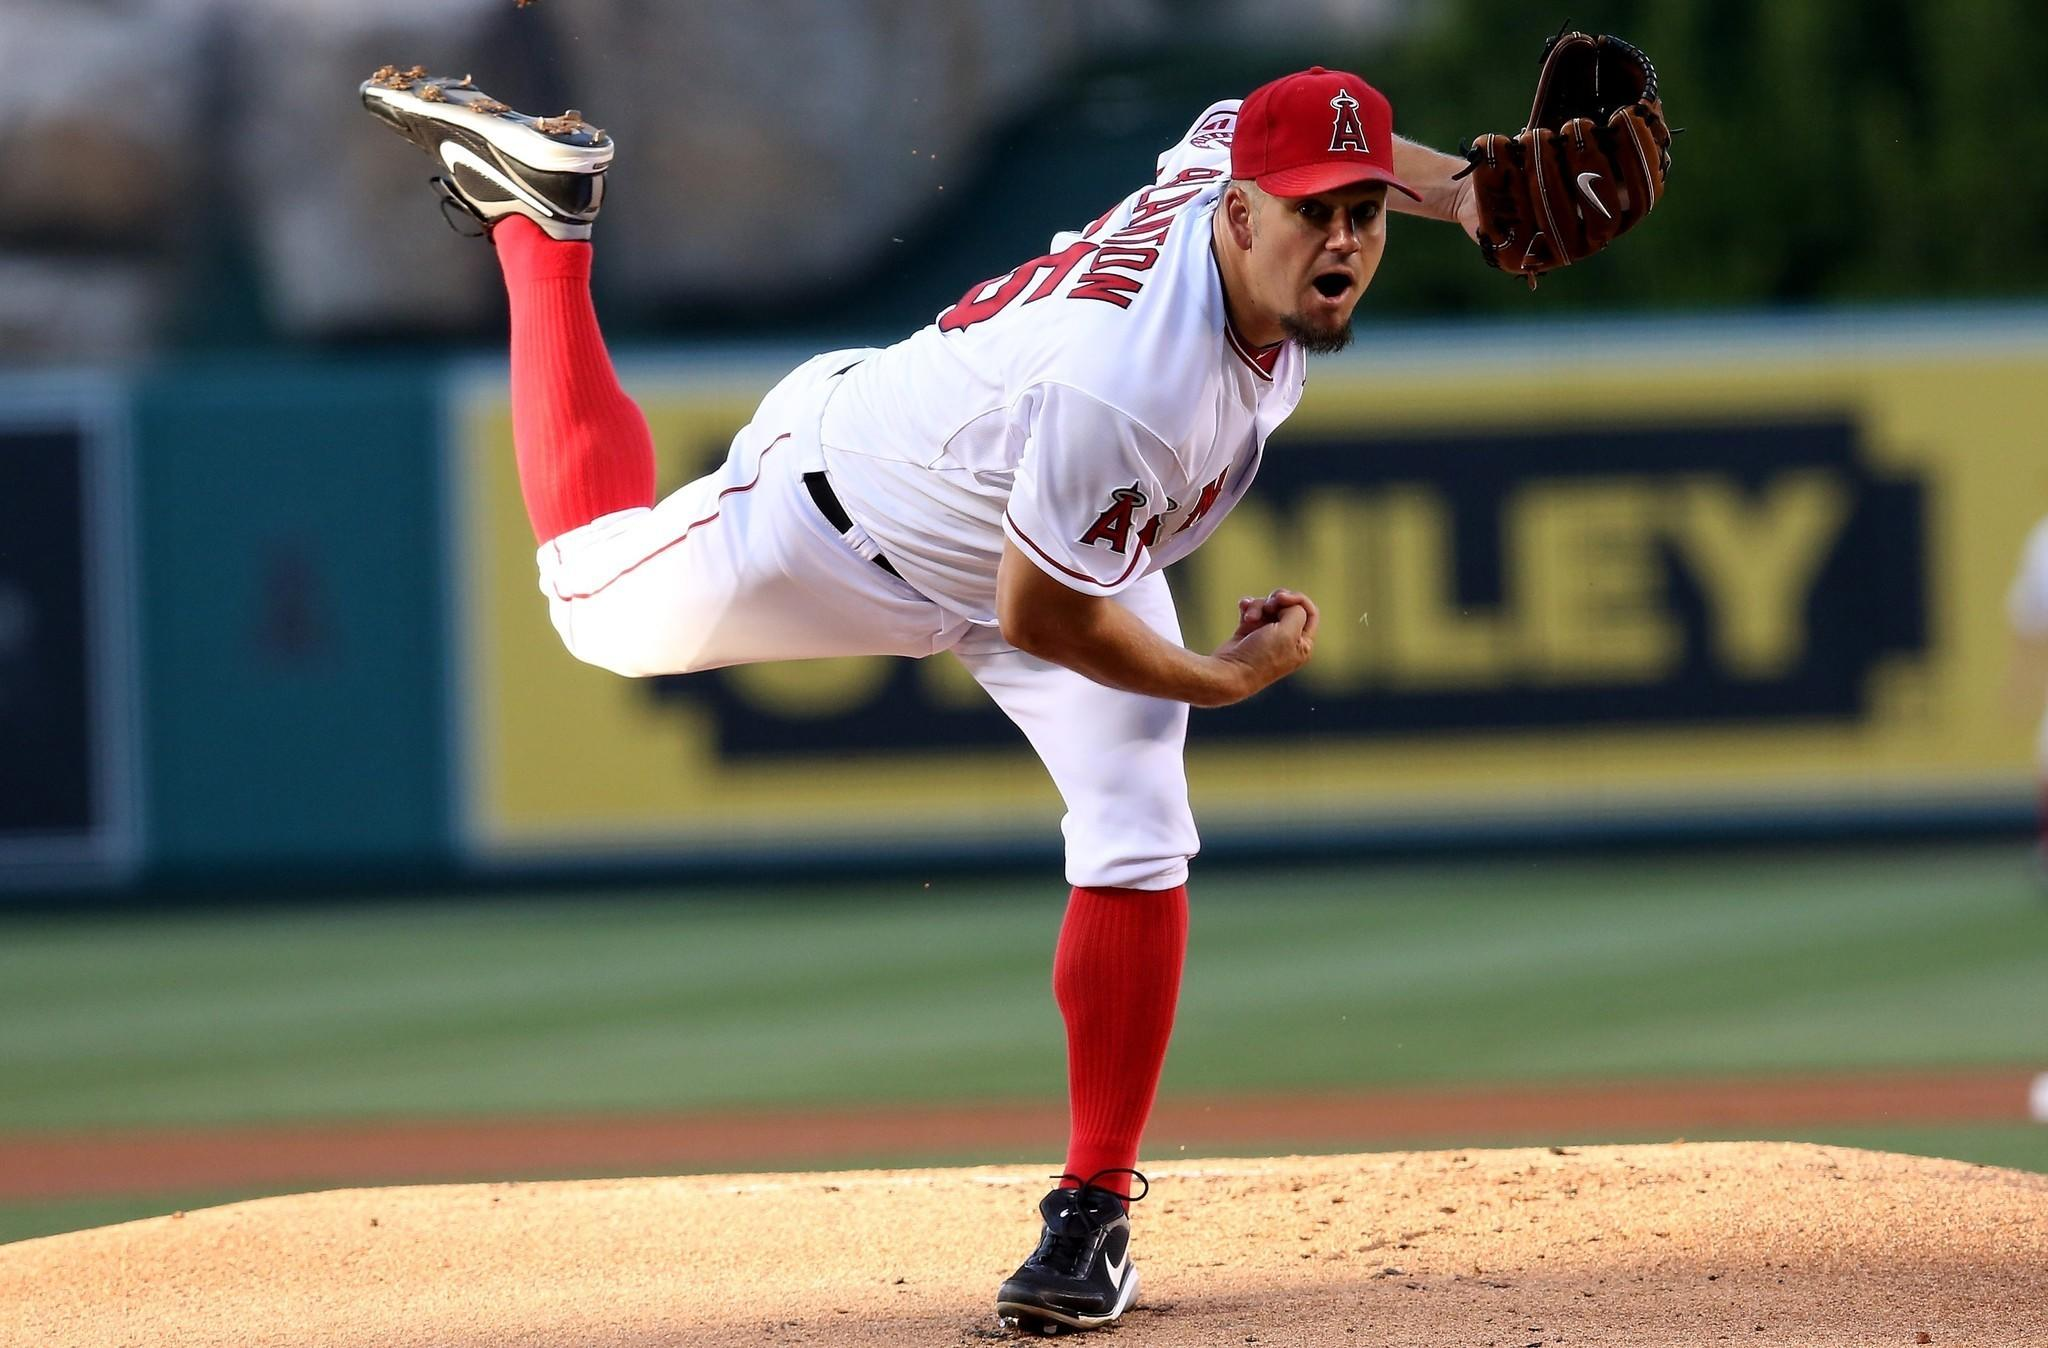 Veteran right-hander Joe Blanton made 28 appearances for the Angels last season, including 20 starts. He had a 2-14 record with a 6.04 earned-run average.